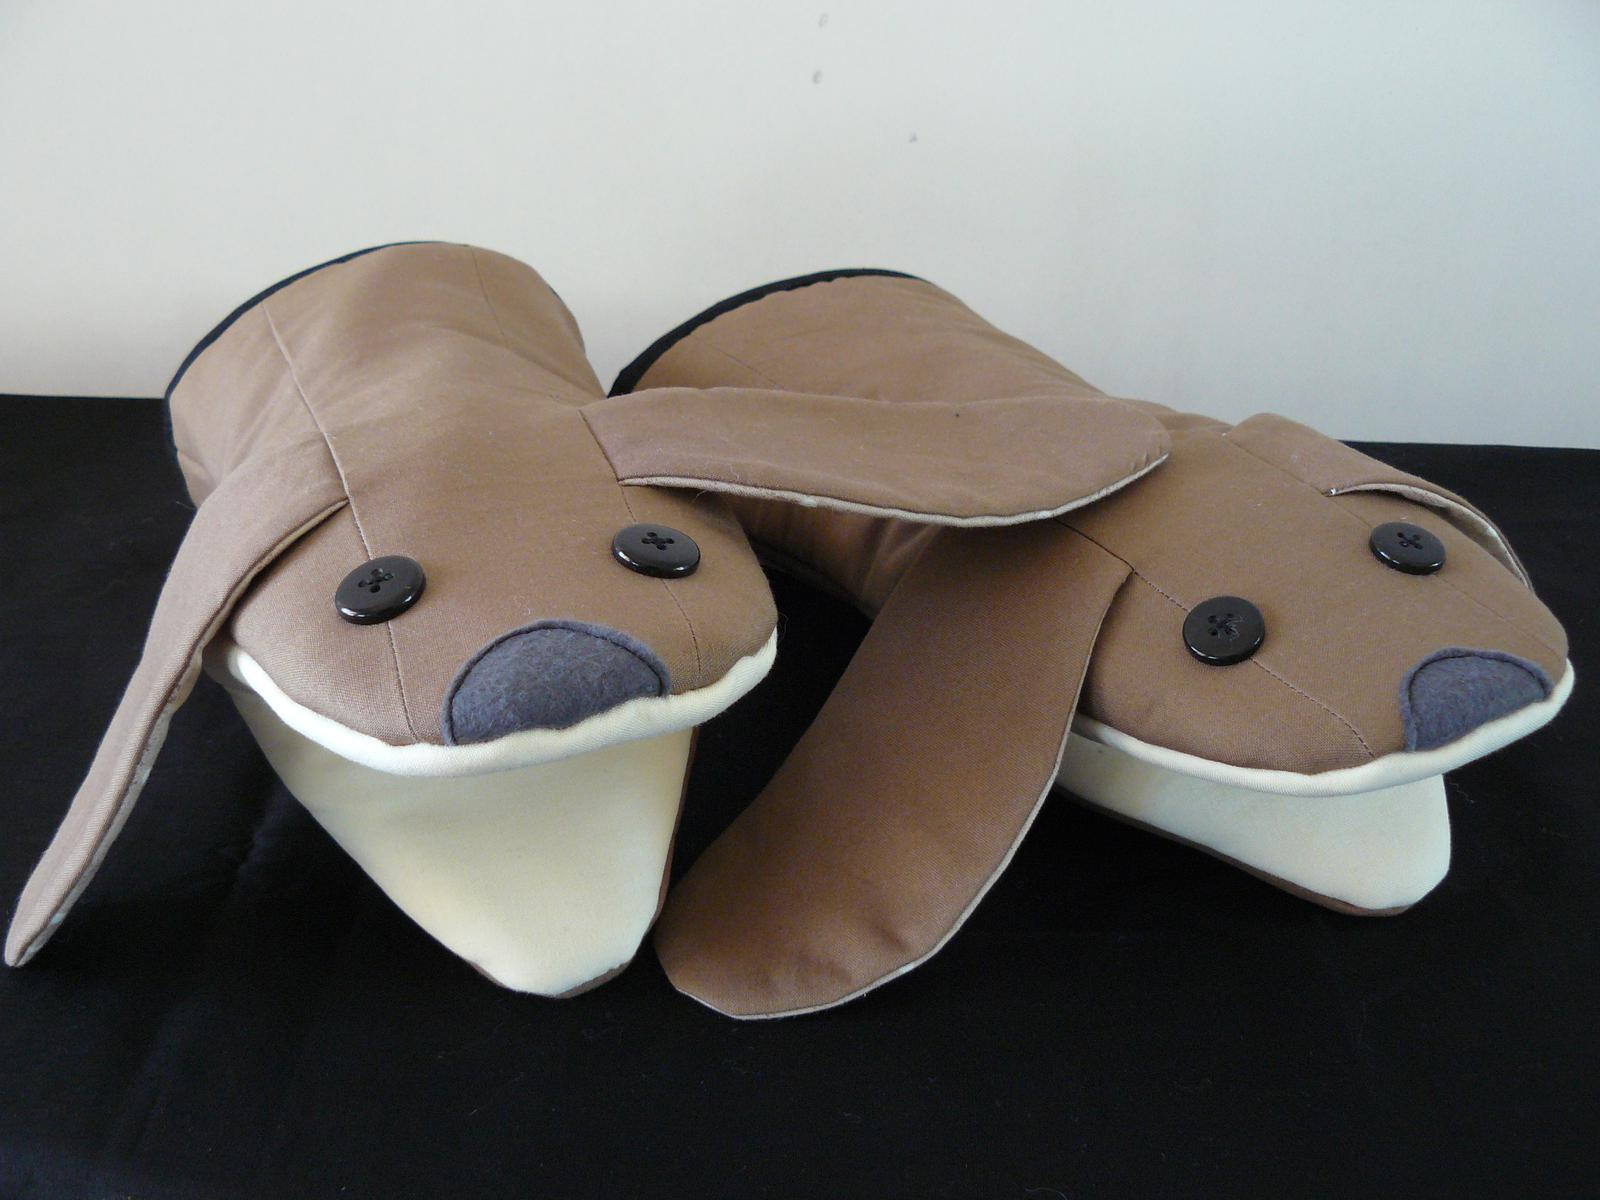 Oven Gloves - cute dogs